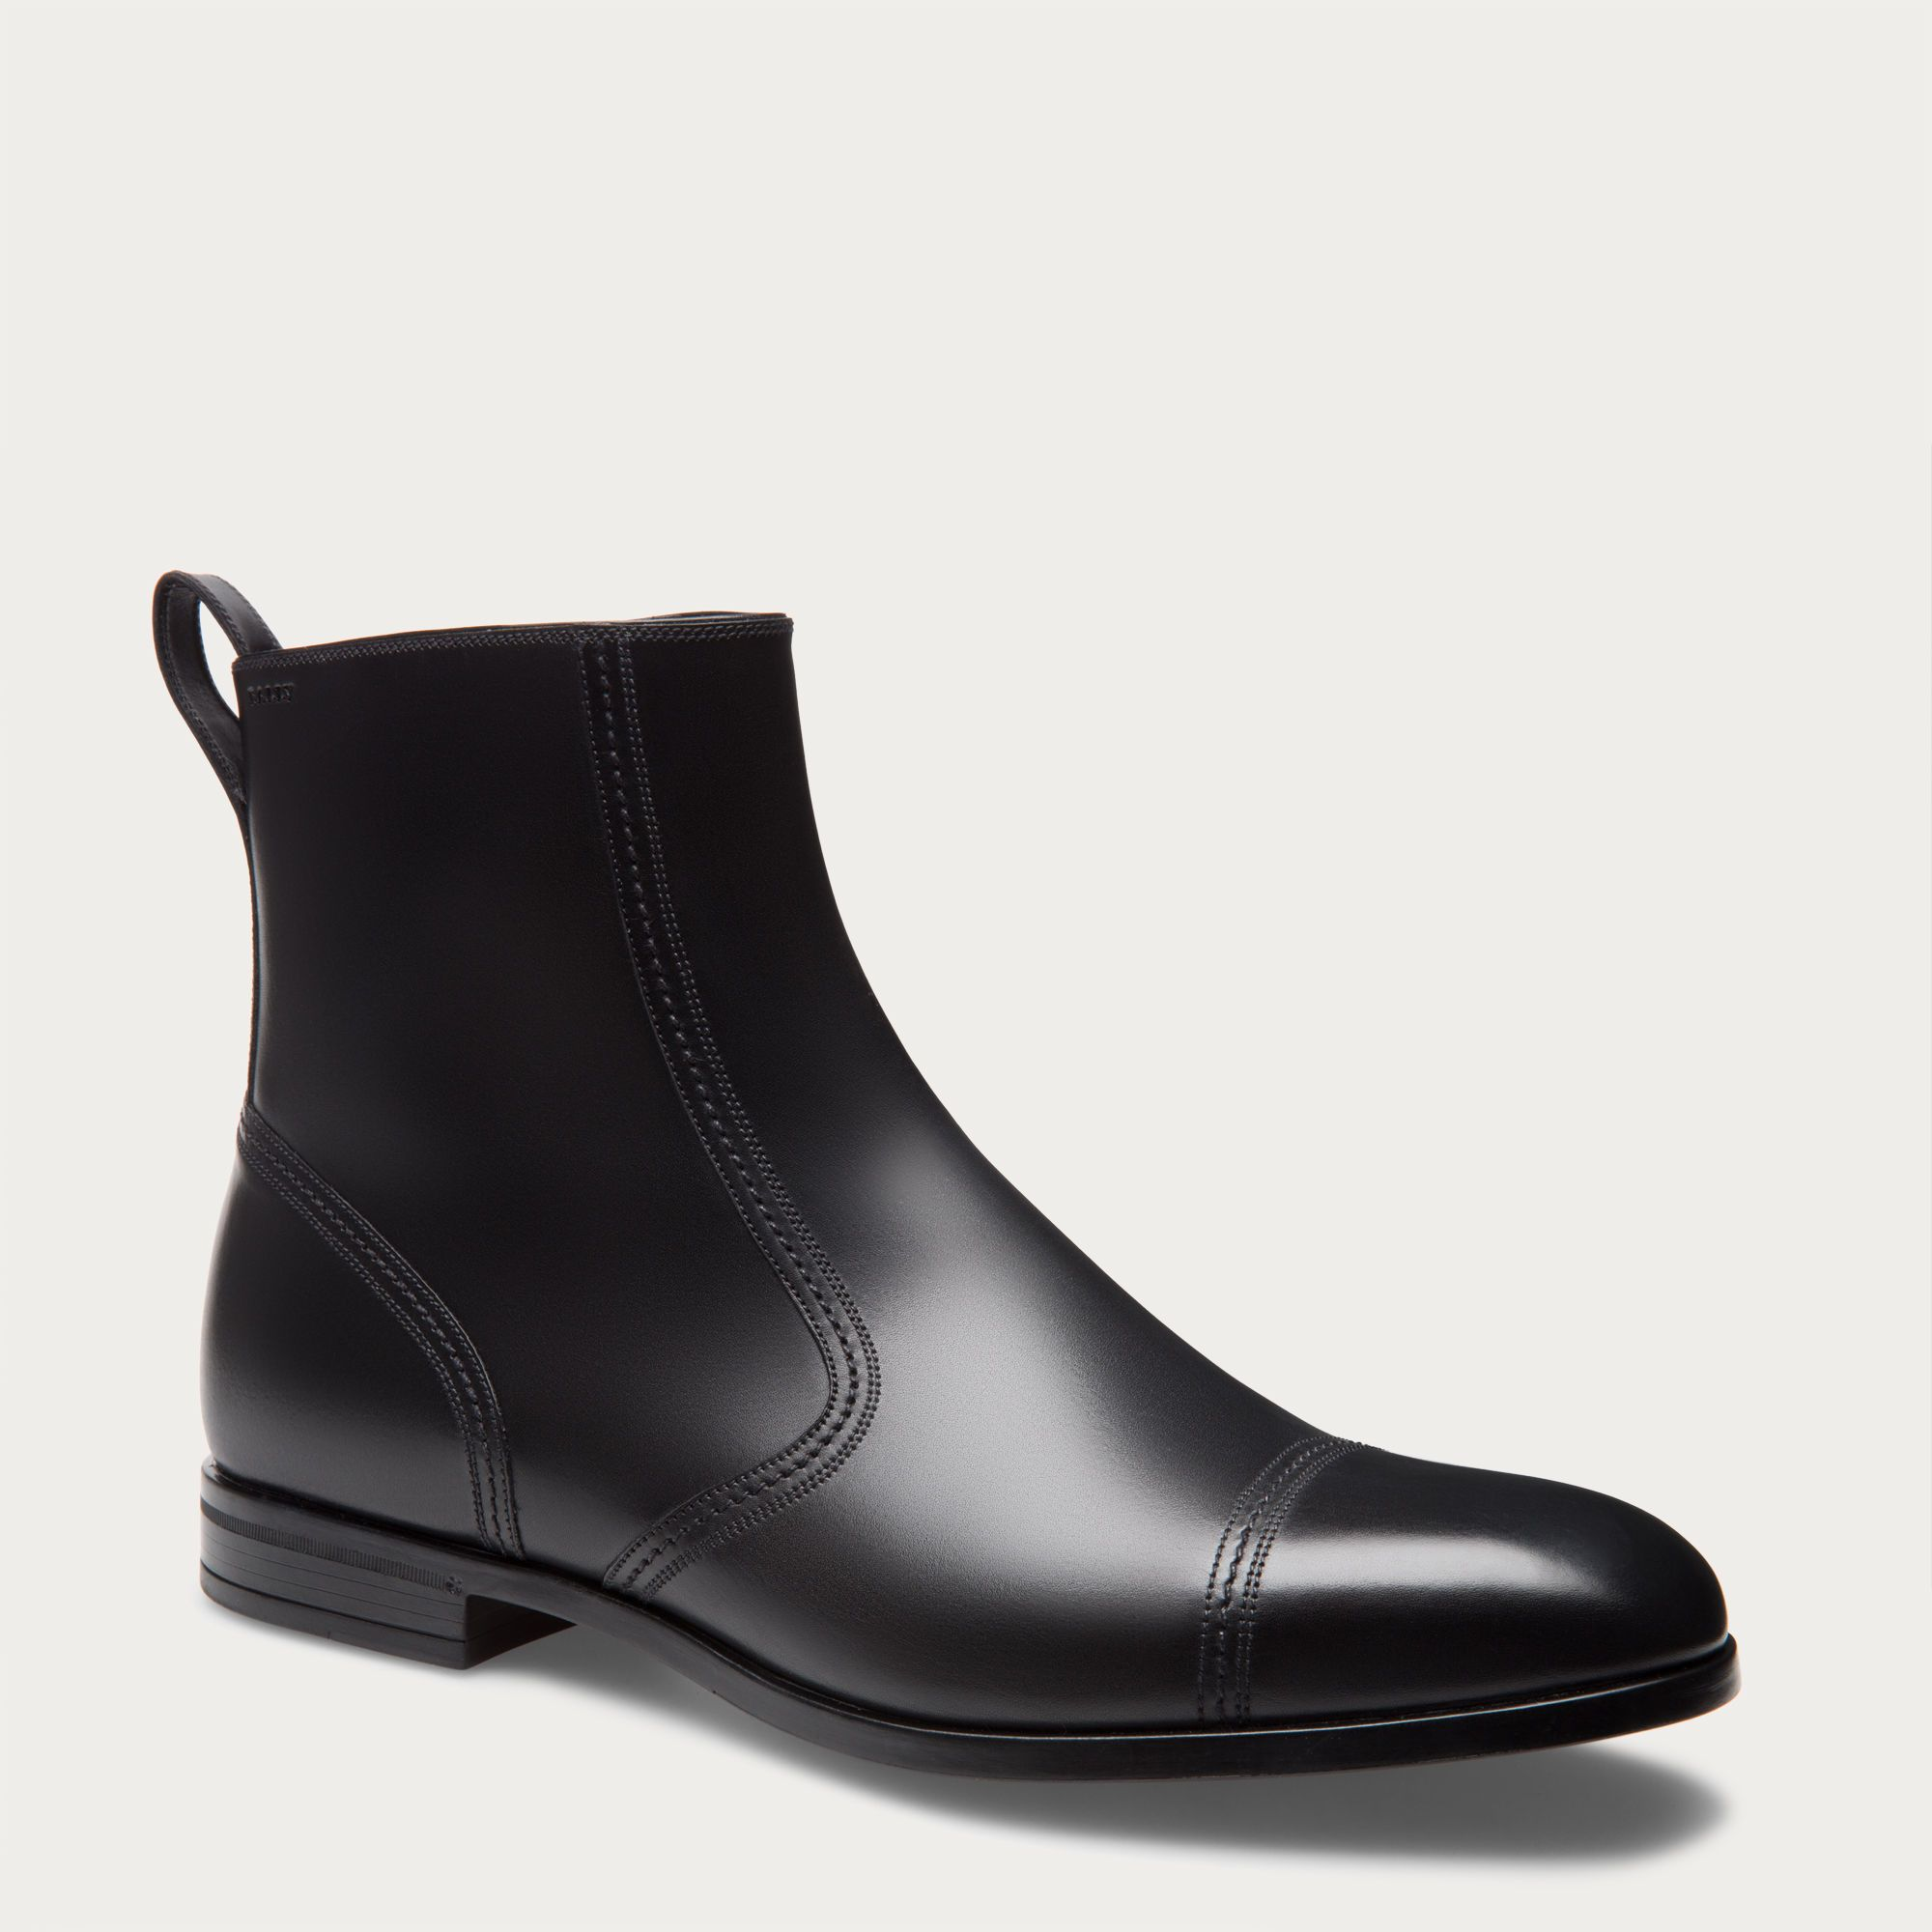 Shop the Landro boot from Bally. A refined leather ankle boot with subtle  decorative stitching.